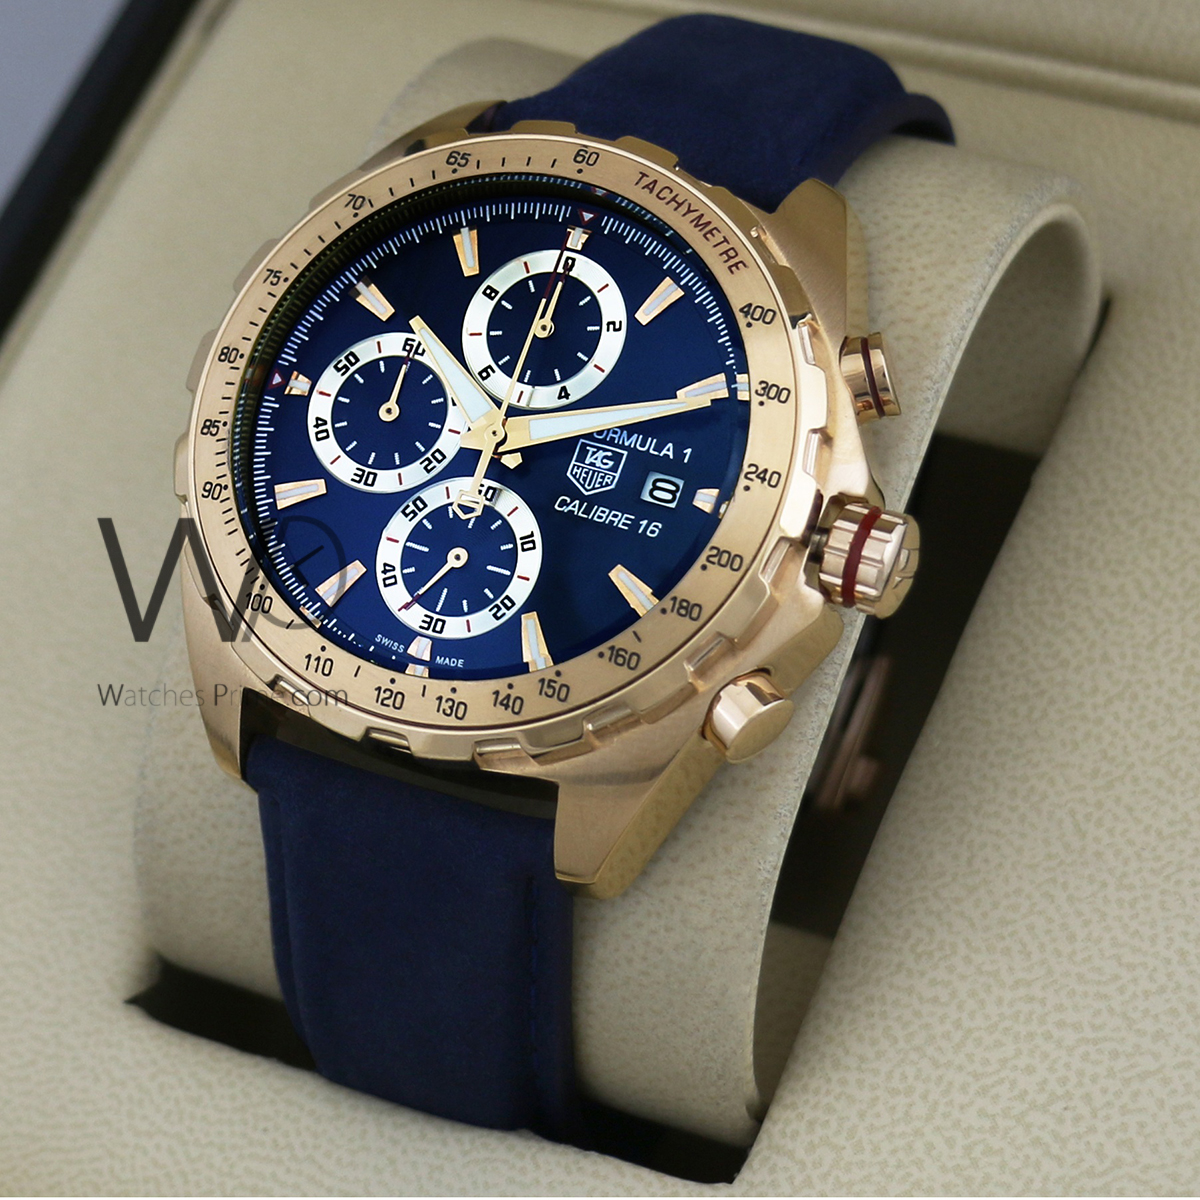 414b9f135145 TAG HEUER FORMULA 1 CALIBRE 16 CHRONOGRAPH WATCH BLUE WITH SUEDE BLUE BELT.  SKU  166. Roll over image to zoom in